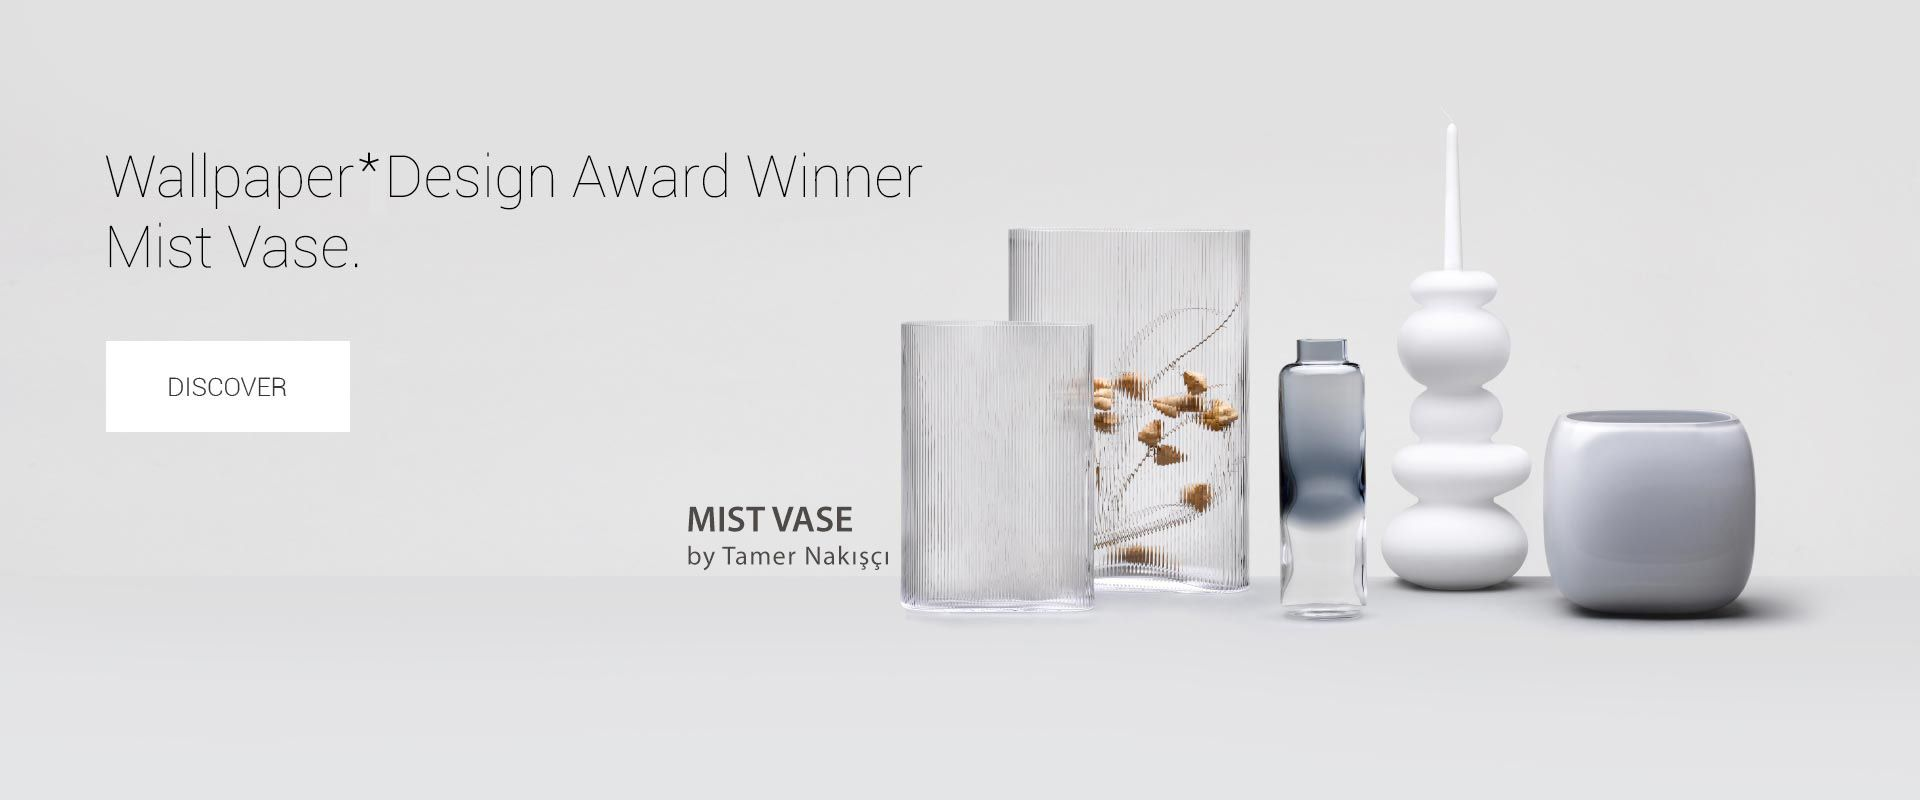 nude glassware for modern living - pnude is the creator and manufacturer of contemporary glassware for modernliving